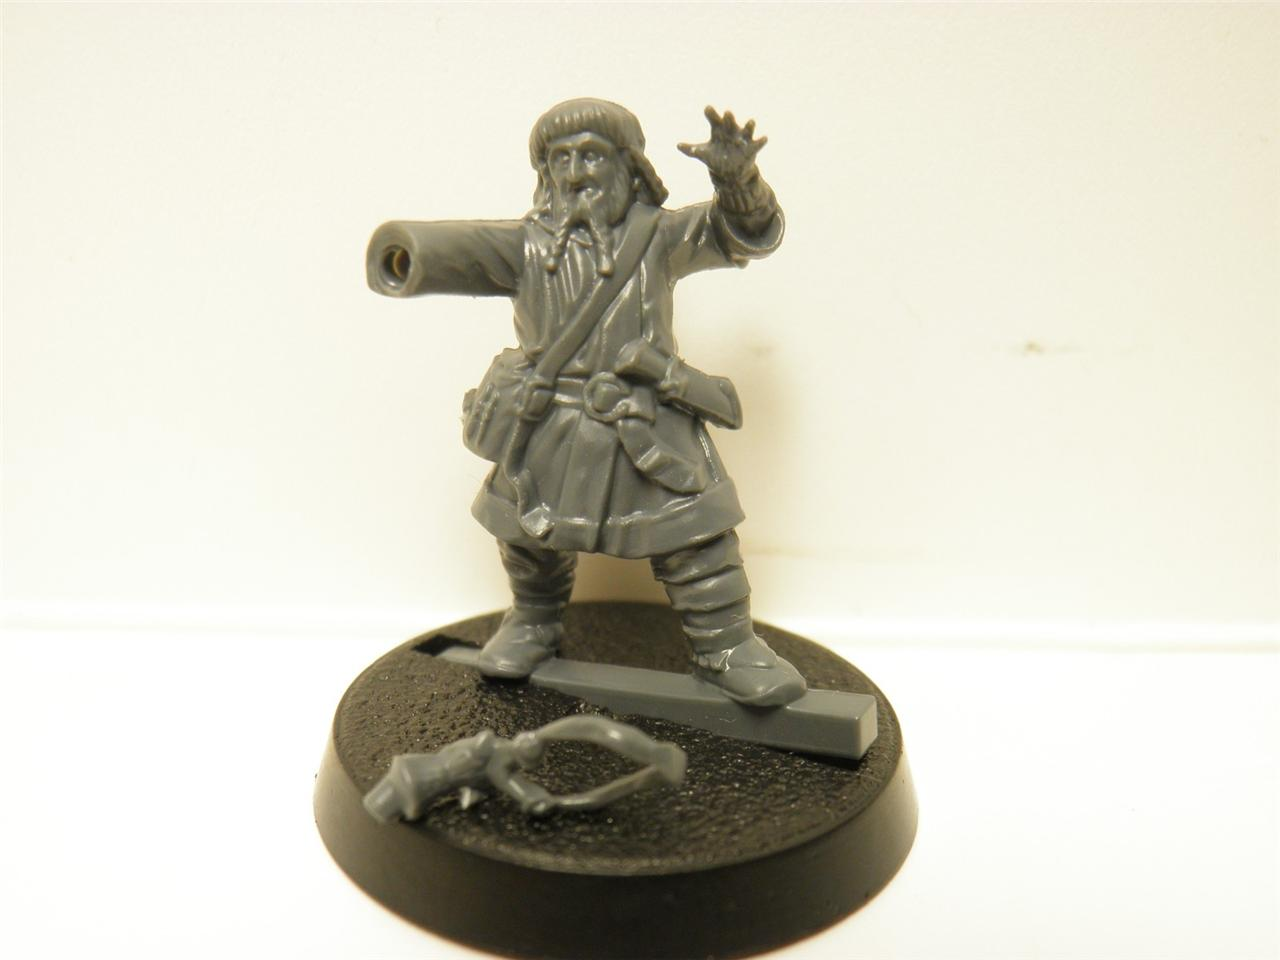 The-Hobbit-Escape-from-Goblin-Town-Miniature-Ori-the-Dwarf-NEW